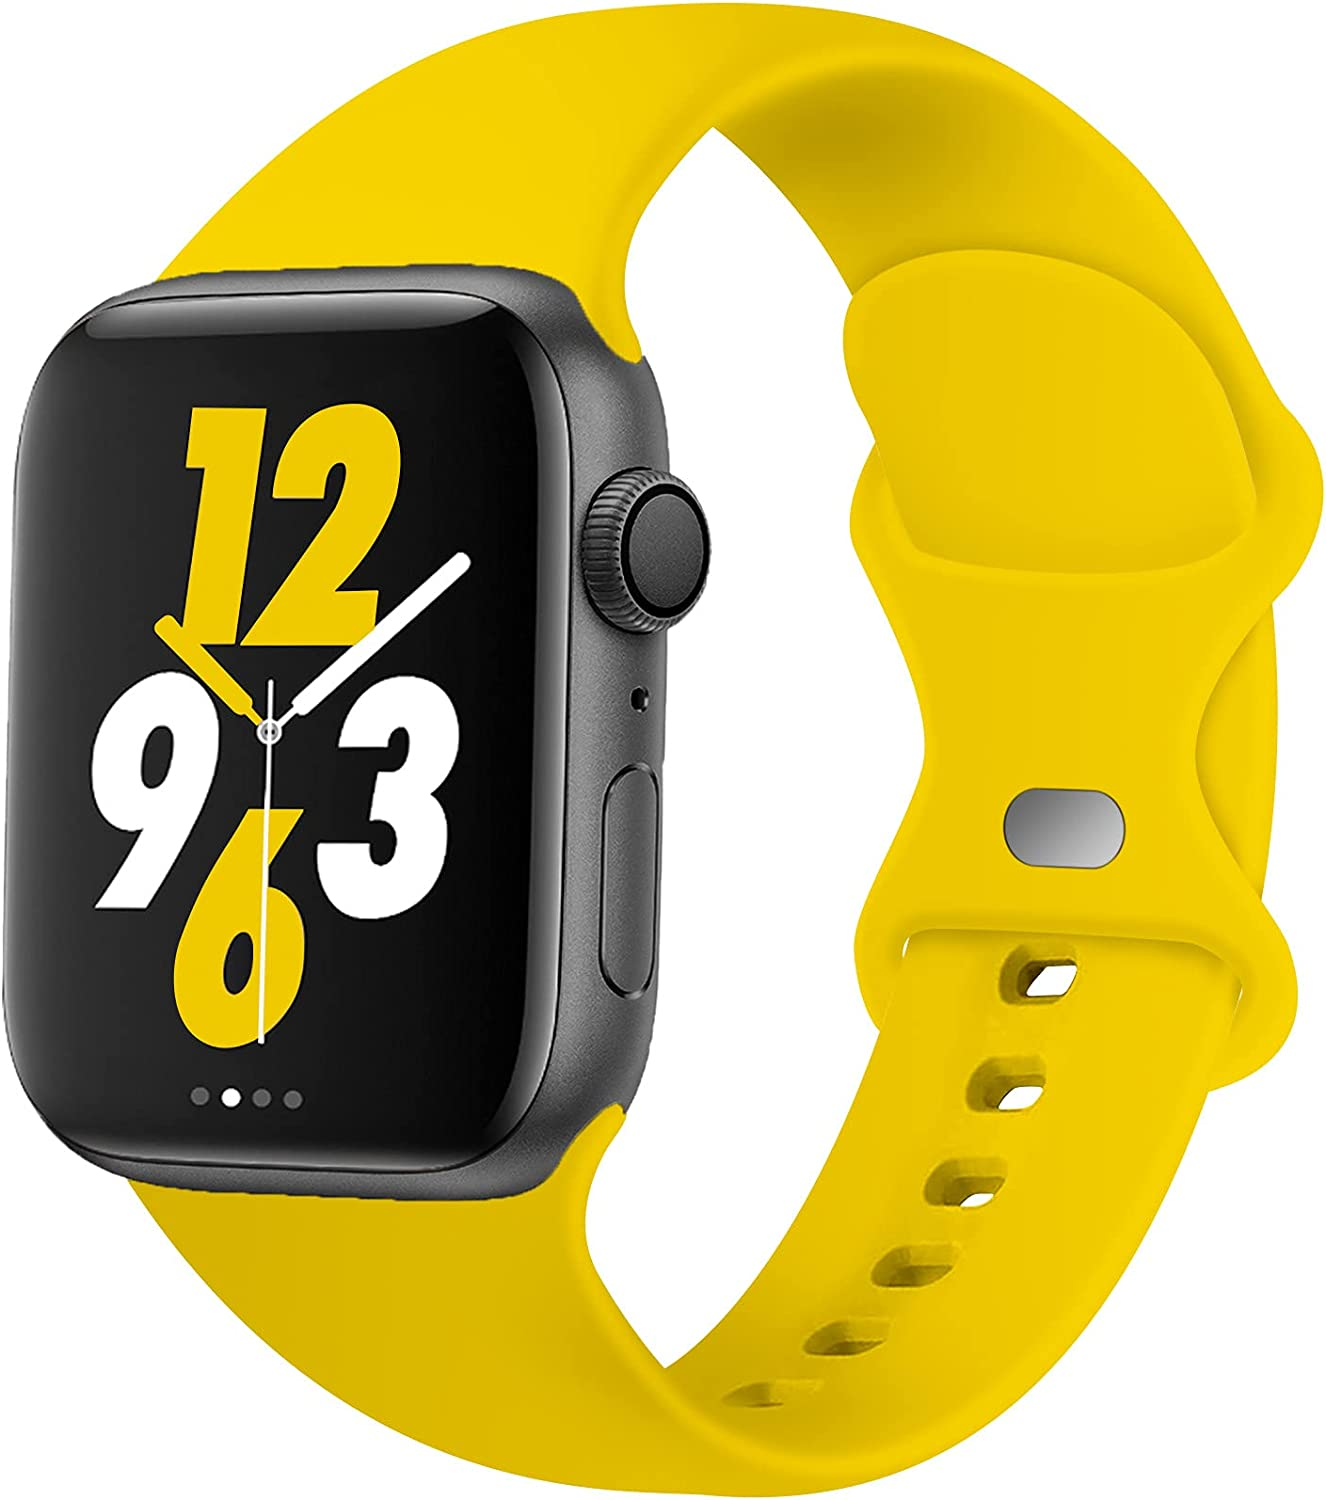 Acrbiutu Bands Compatible with Apple Watch 38mm 40mm 42mm 44mm, Replacement Soft Silicone Sport Strap for iWatch SE Series 6/5/4/3/2/1 Women Men, Yellow 42mm/44mm M/L